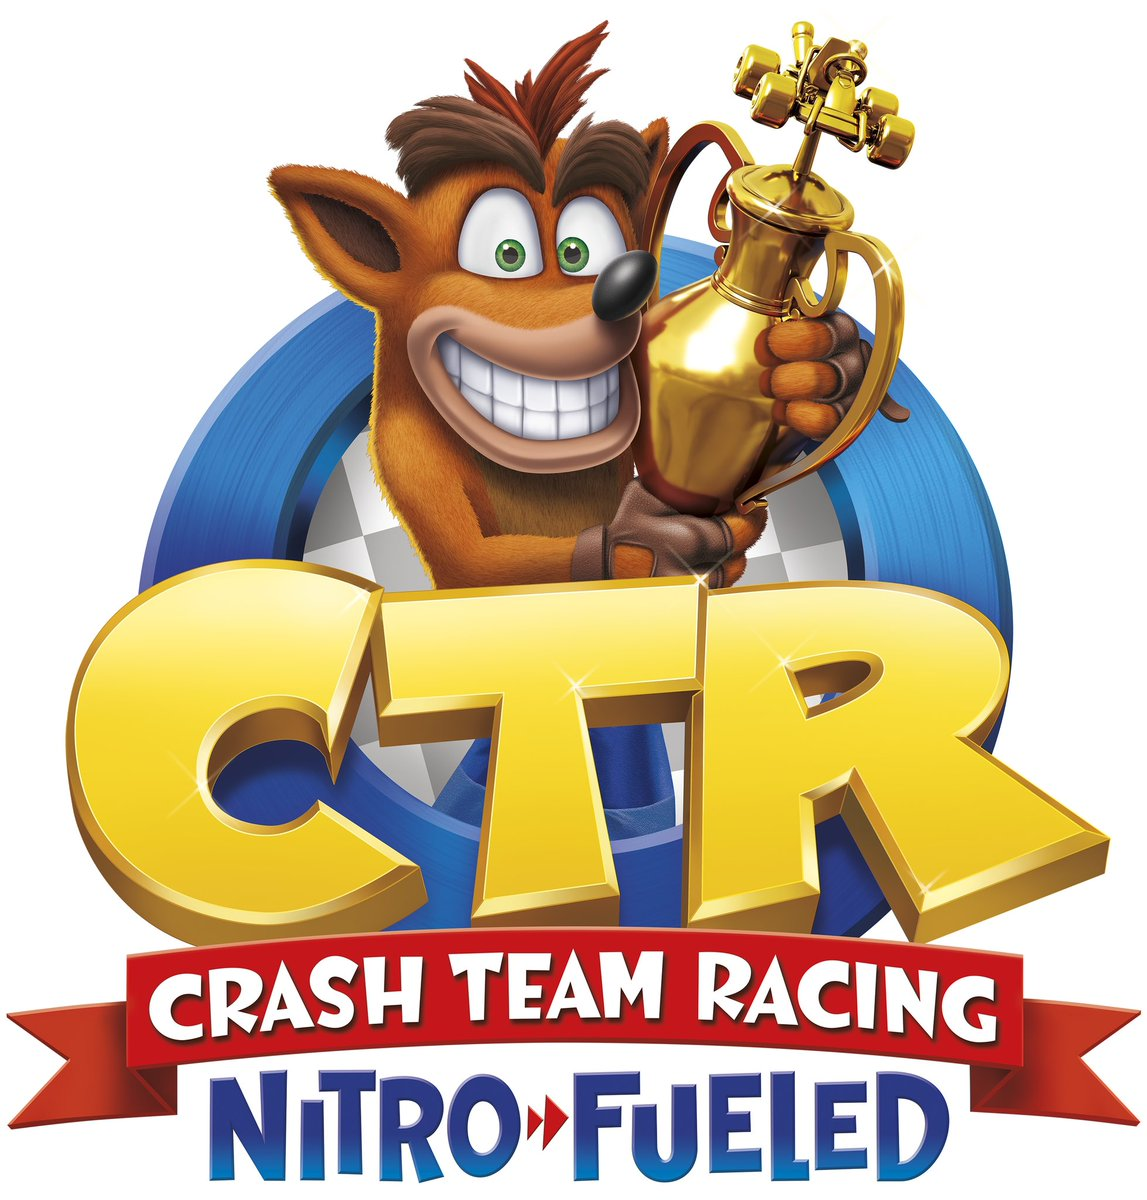 Good Evening Monsterrsss! It's been a while, so who wants to WIN a copy of #CrashTeamRacingNitroFueled ? Simply LIKE and RT this for a chance to WIN a copy on the platform of your choice 😍💚!!